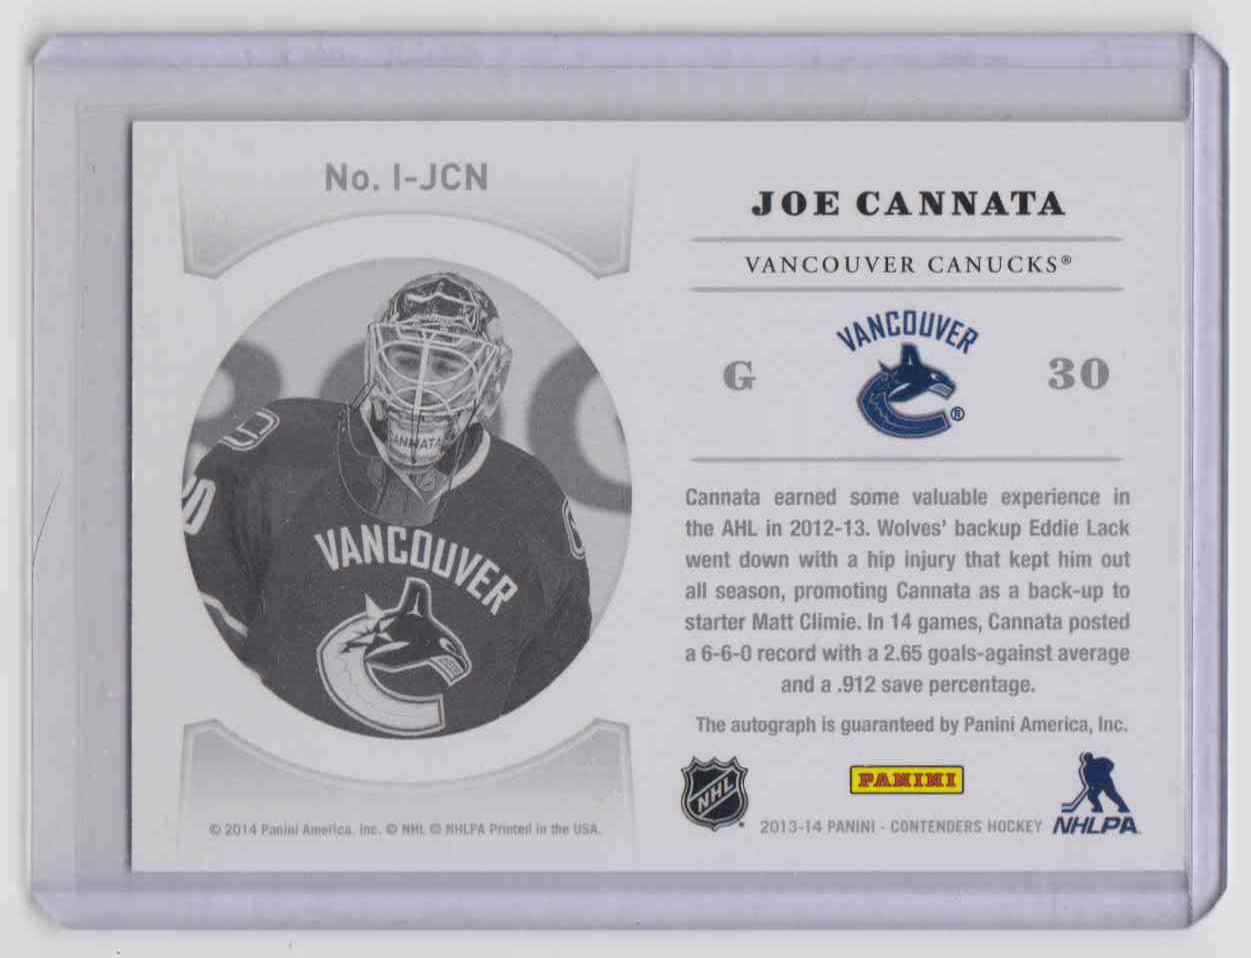 2013-14 Panini Contenders NHL Ink ! Joe Cannata #I-JCN card back image